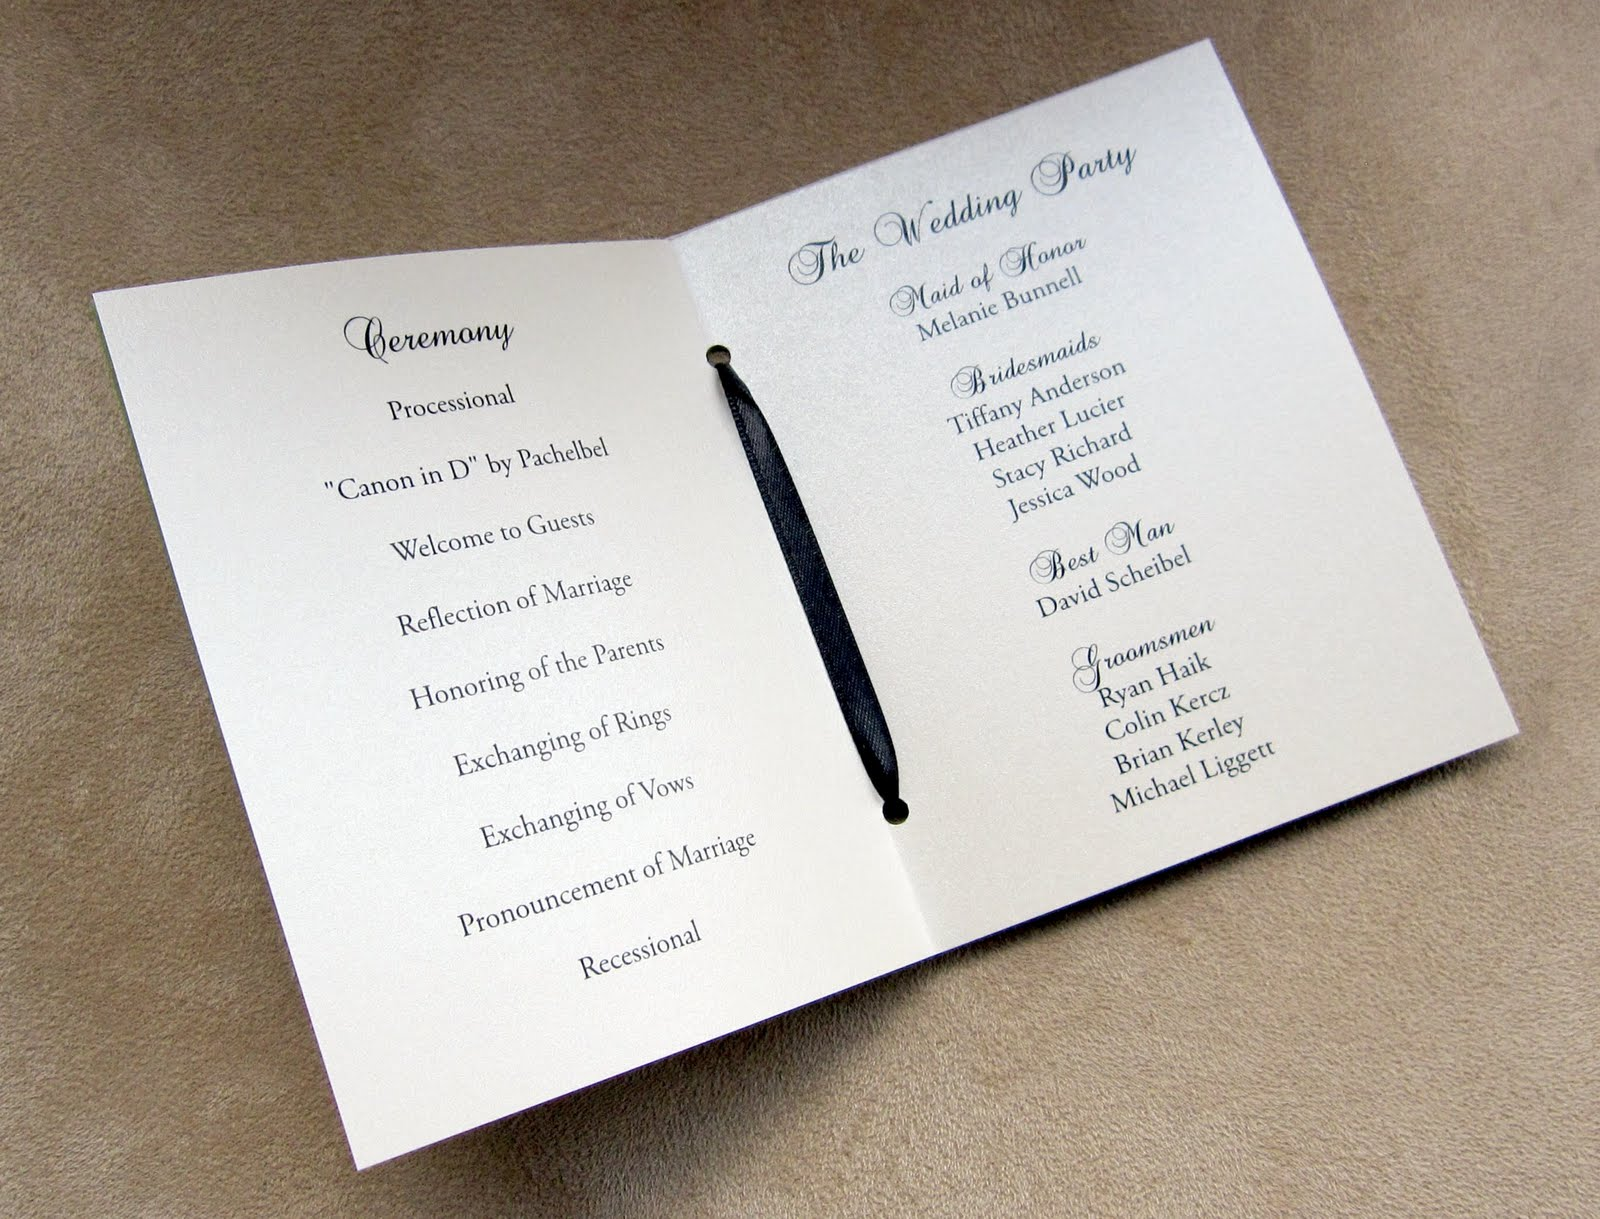 scrapping innovations meredith and joseph wedding booklets with